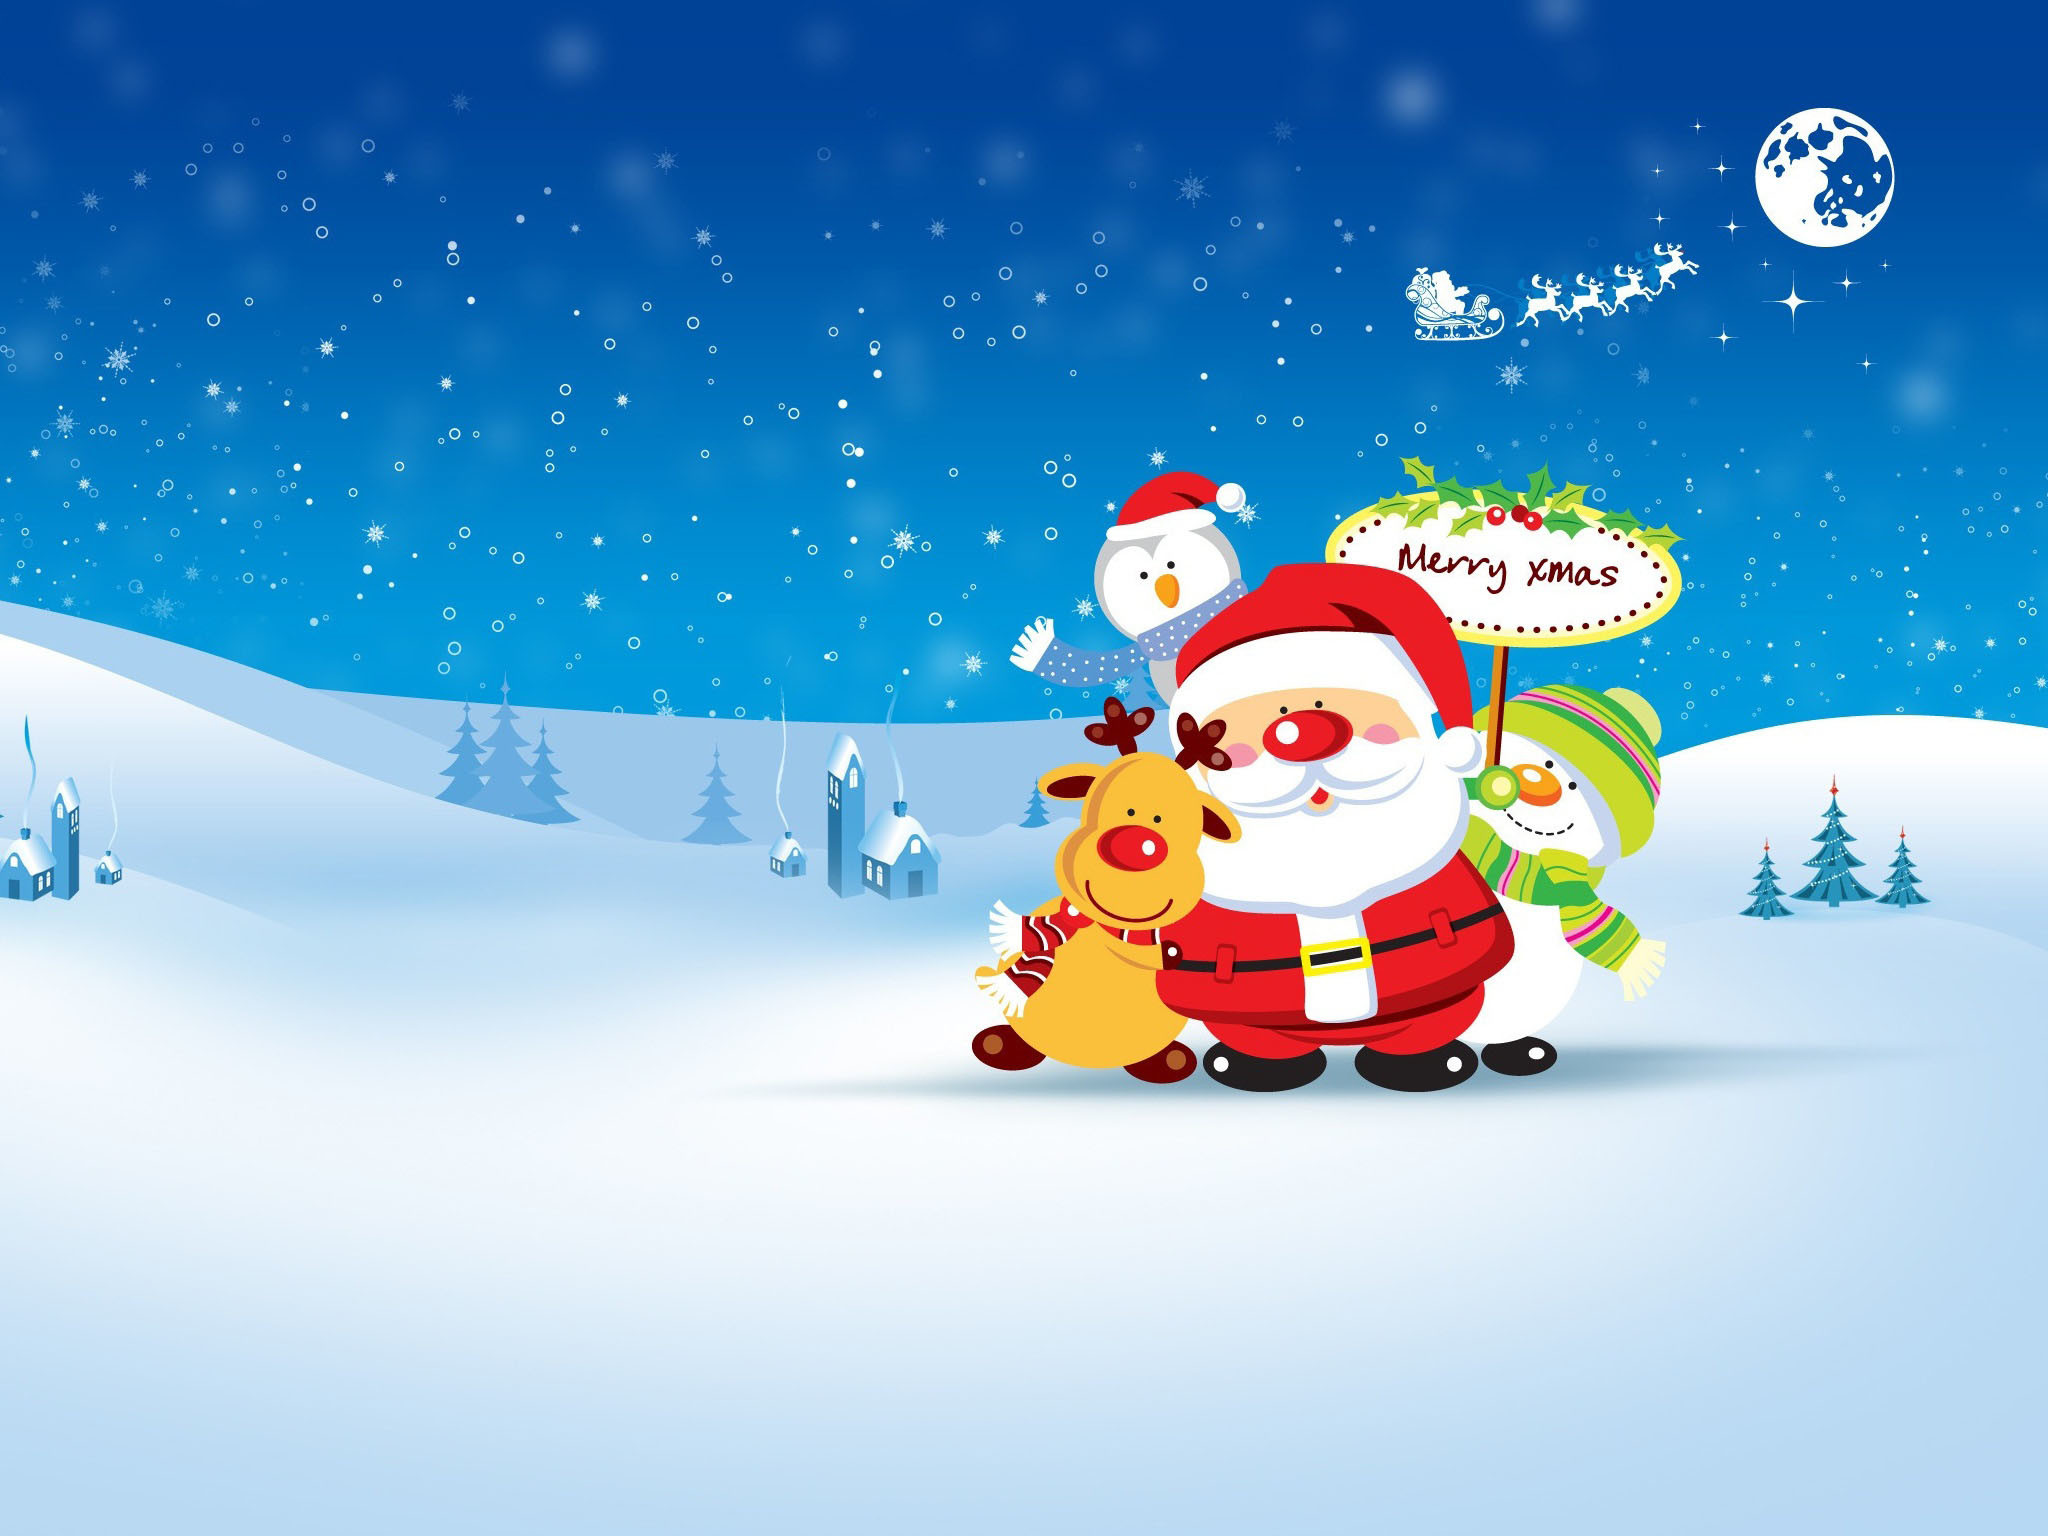 2048x1536 Merry Xmas Wallpaper Hd